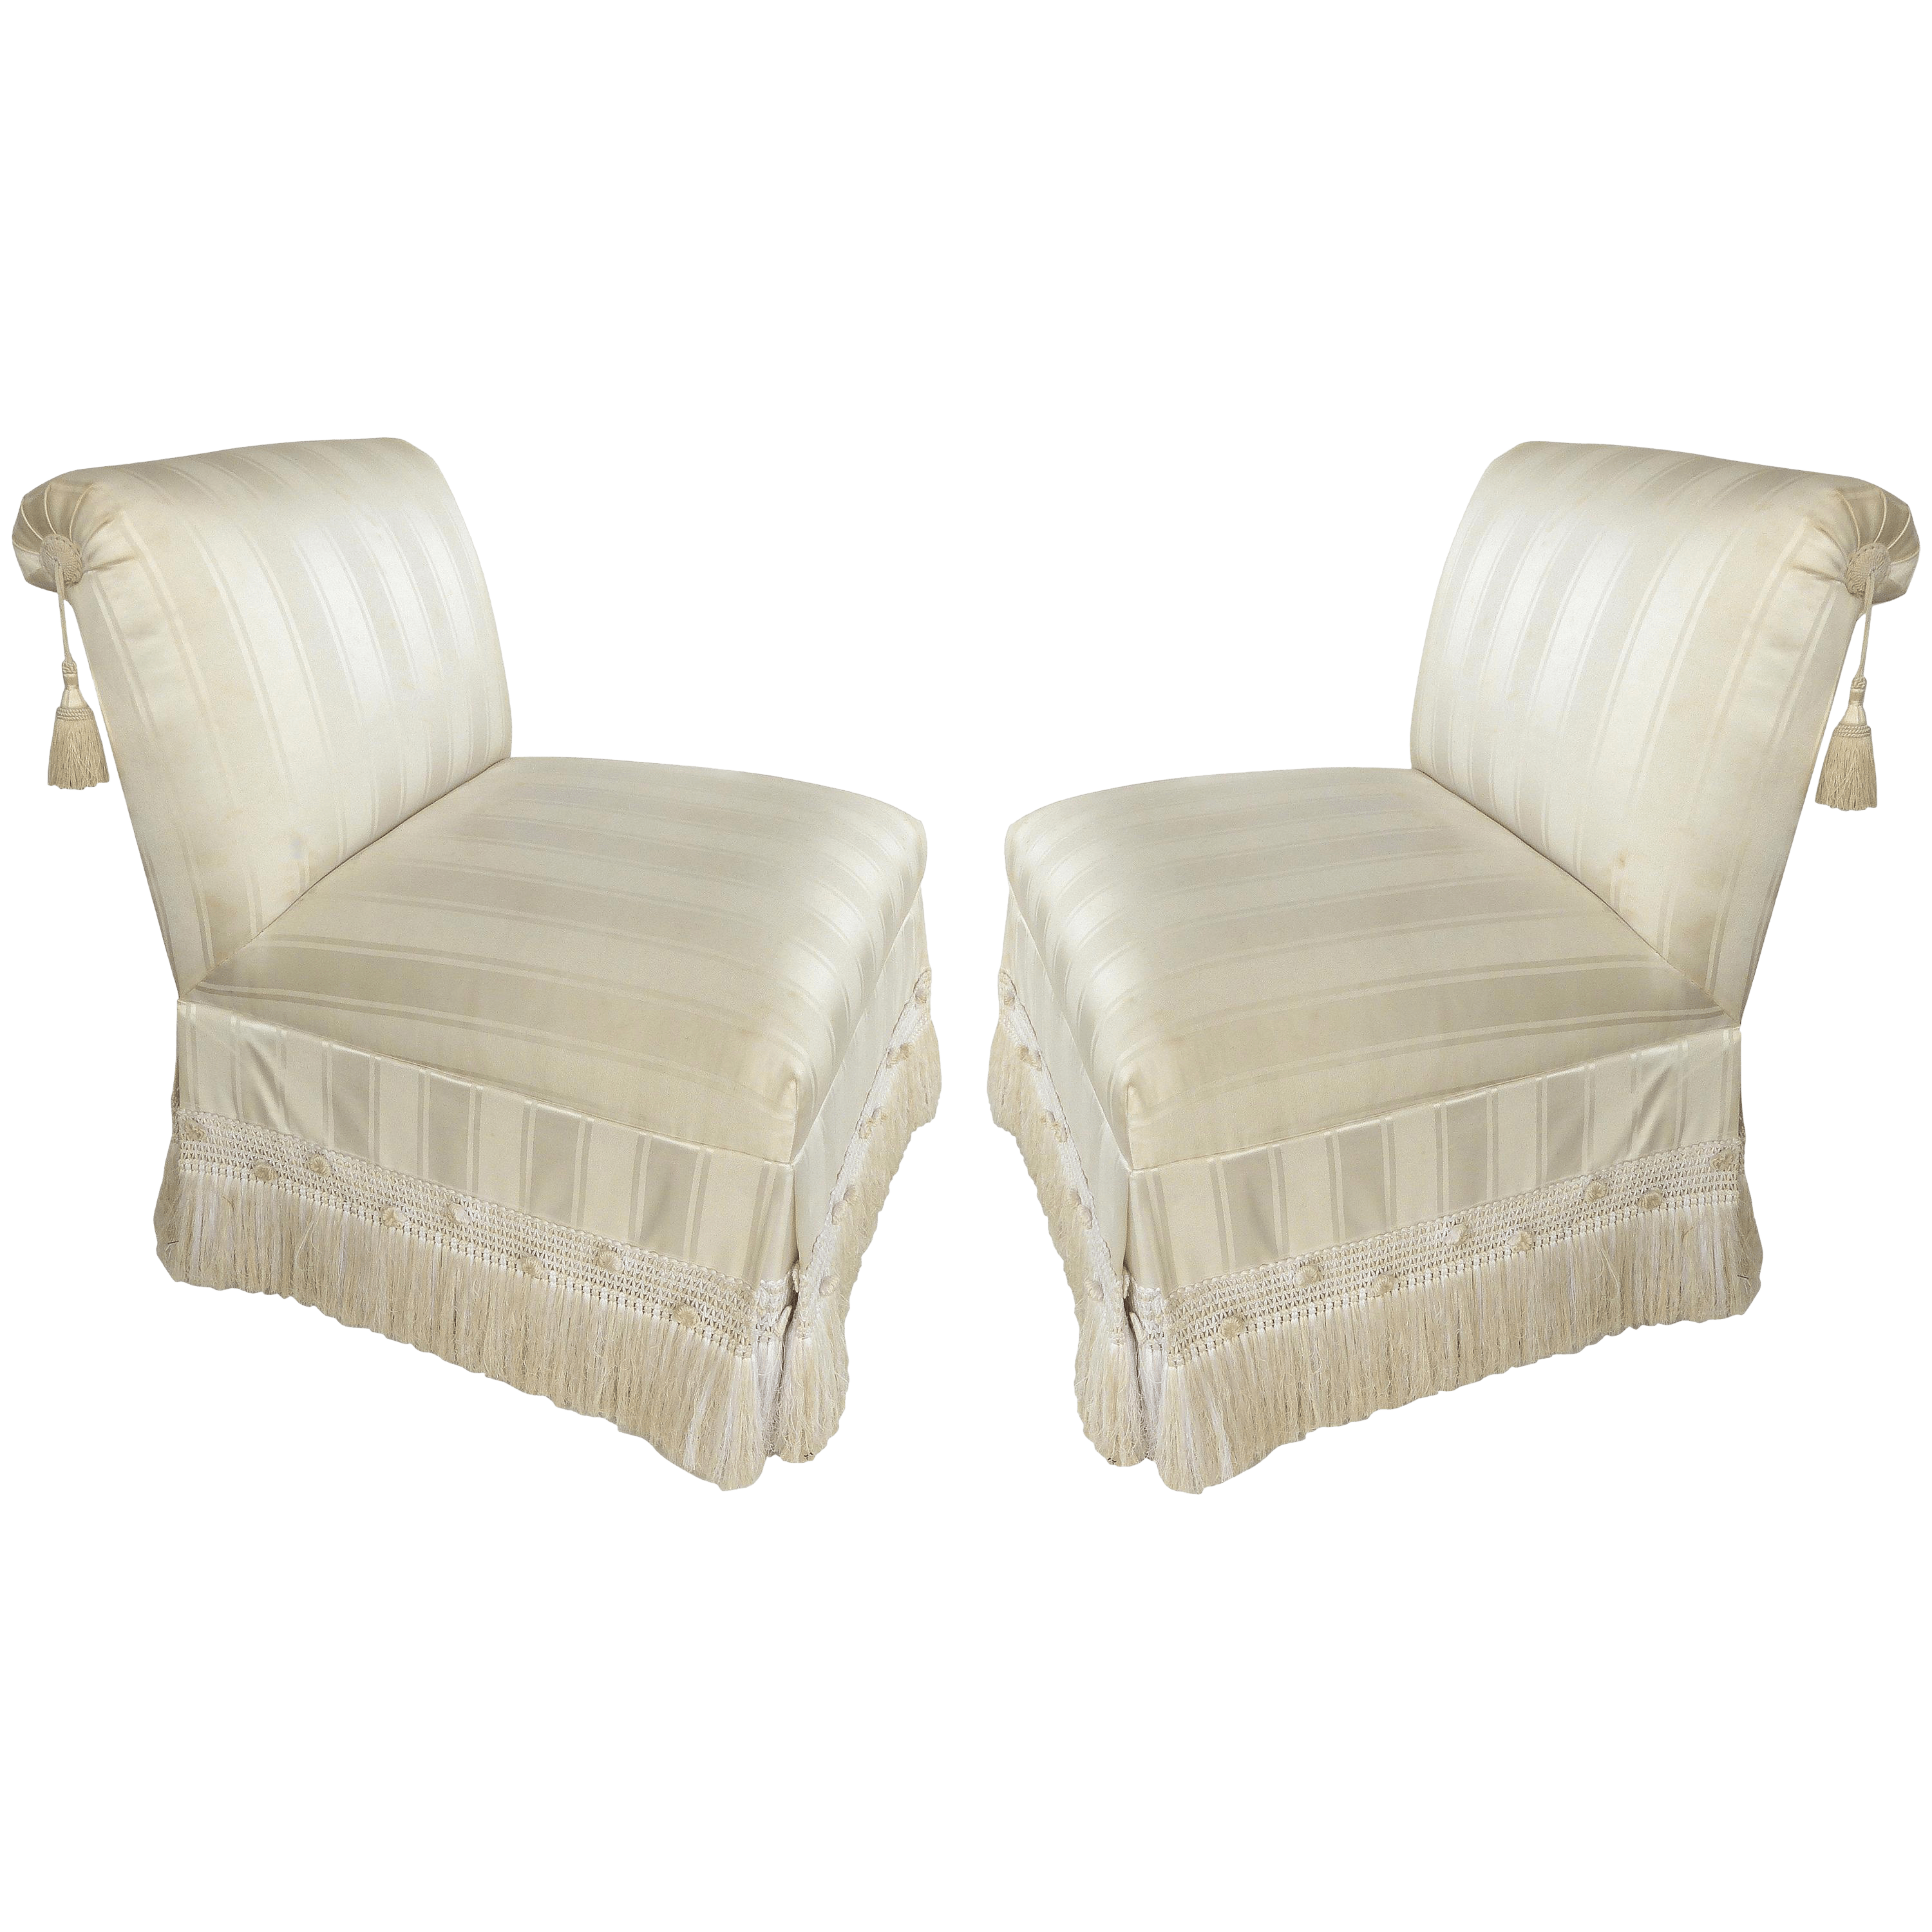 Custom Upholstered Slipper Chairs With Trim And Tassels Pair